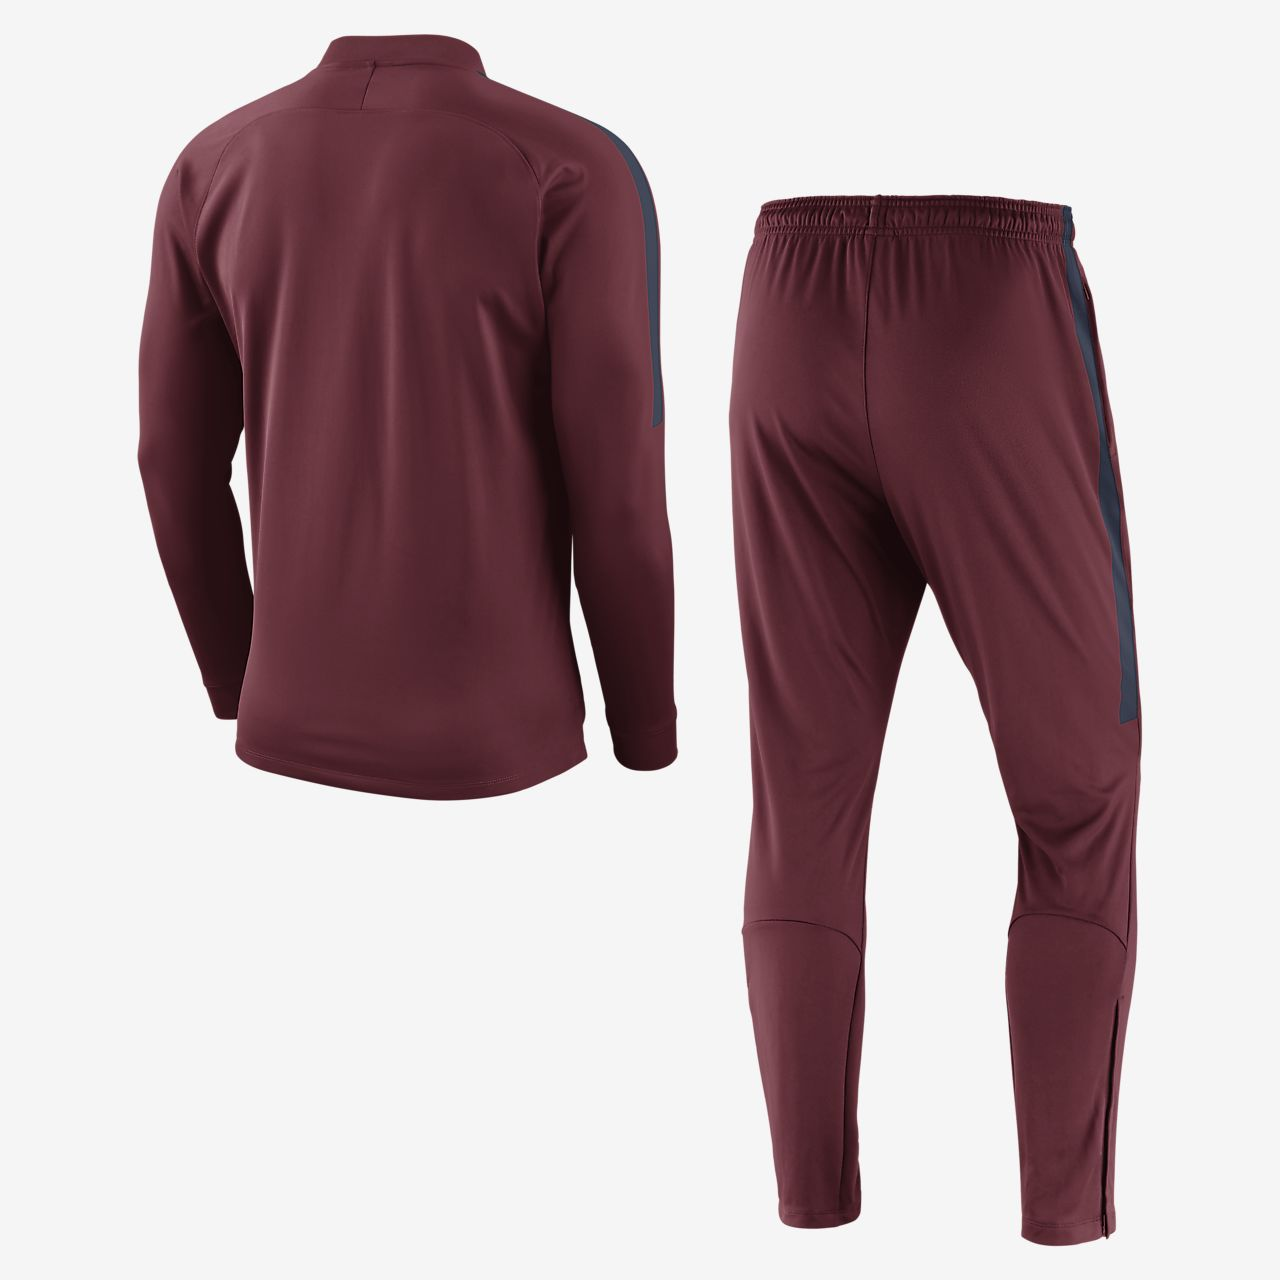 ... Cleveland Cavaliers Nike Dry Men's NBA Track Suit